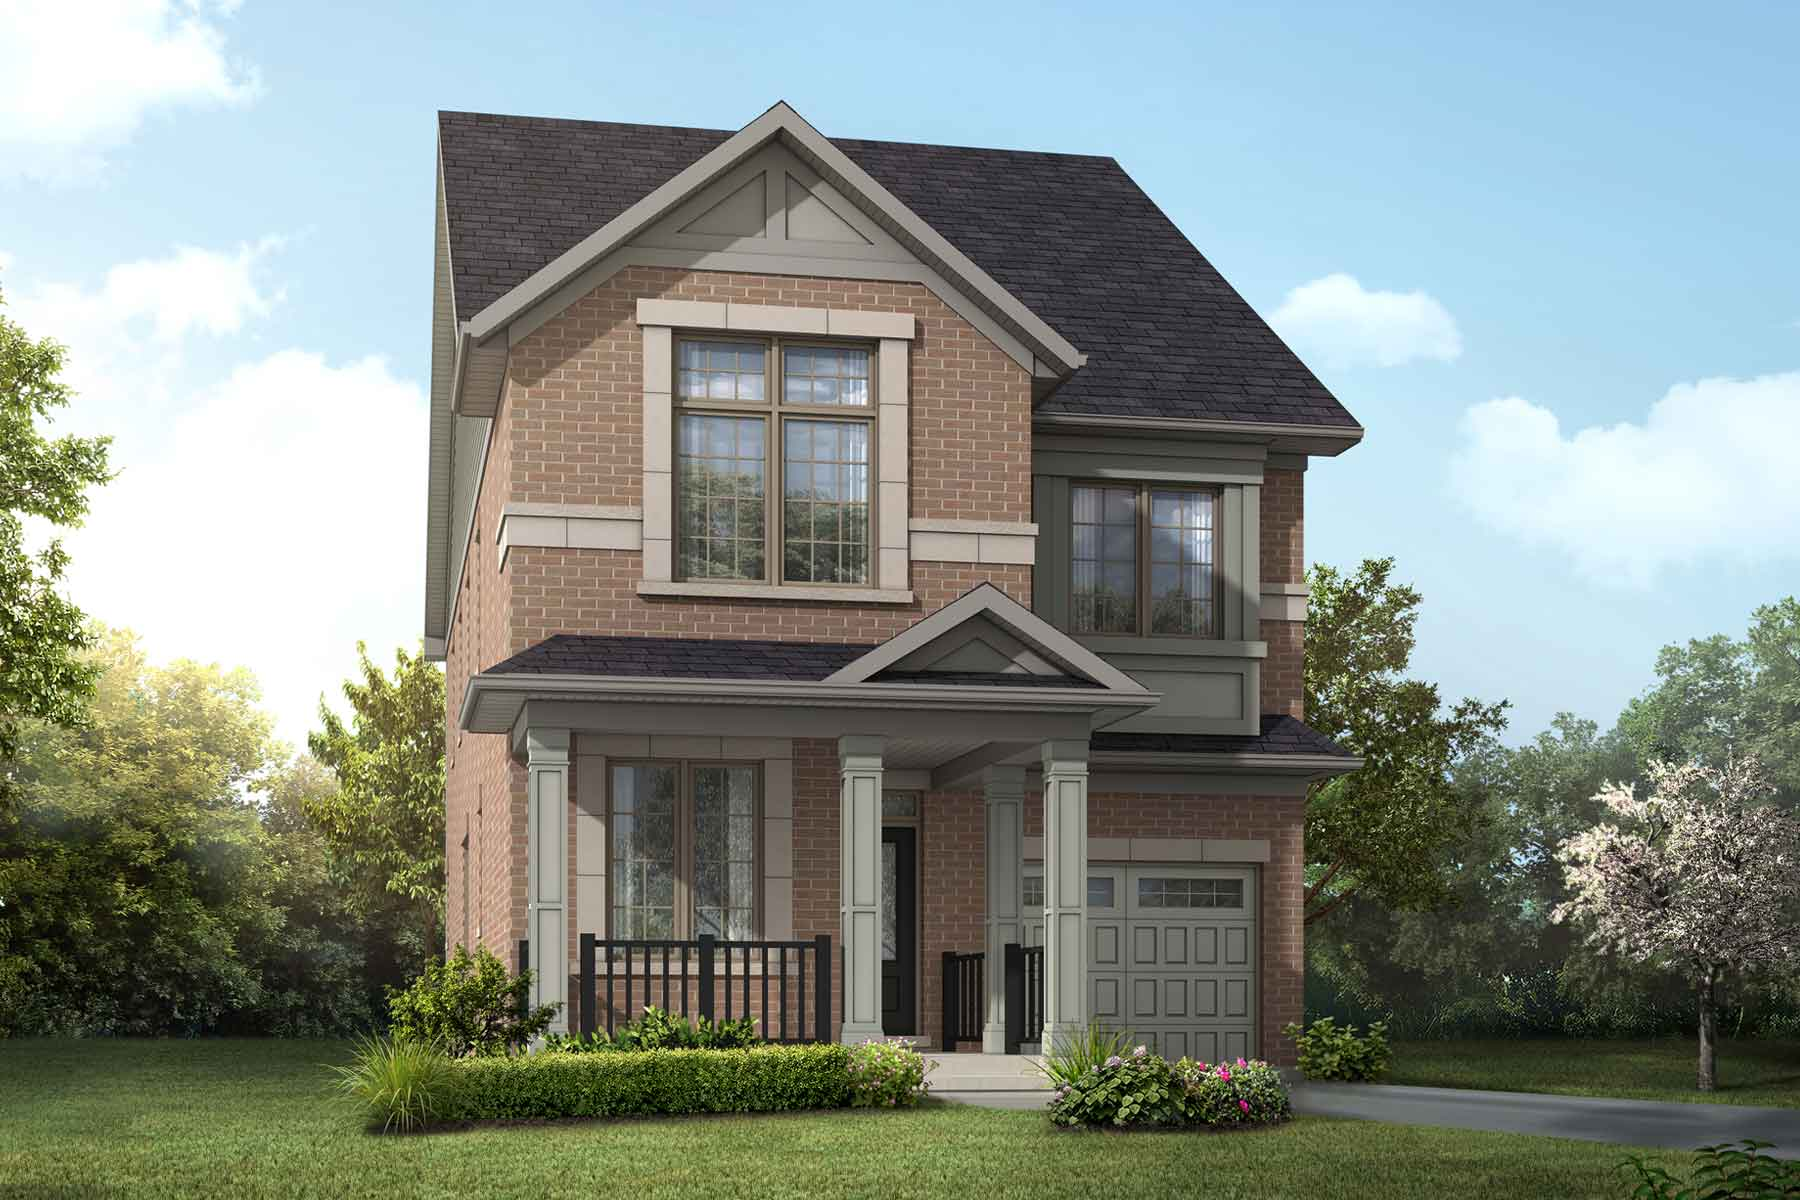 Sky Plan traditional_springwater_sky_main at Springwater in Markham Ontario by Mattamy Homes